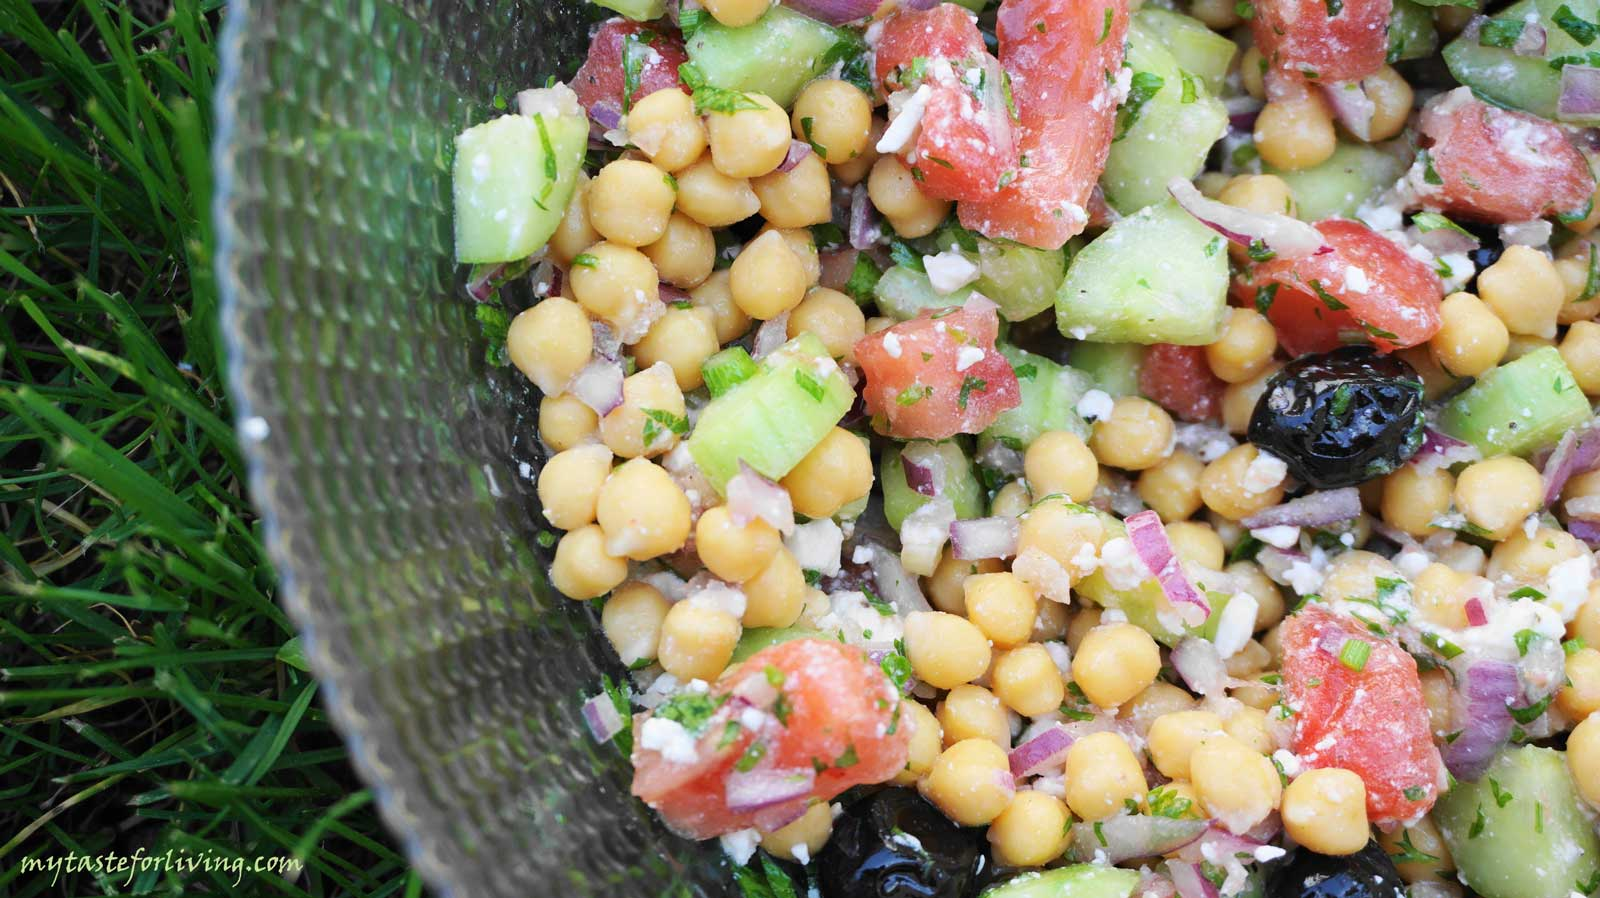 Healthy and refreshing salad with chickpeas, tomatoes and cucumbers.